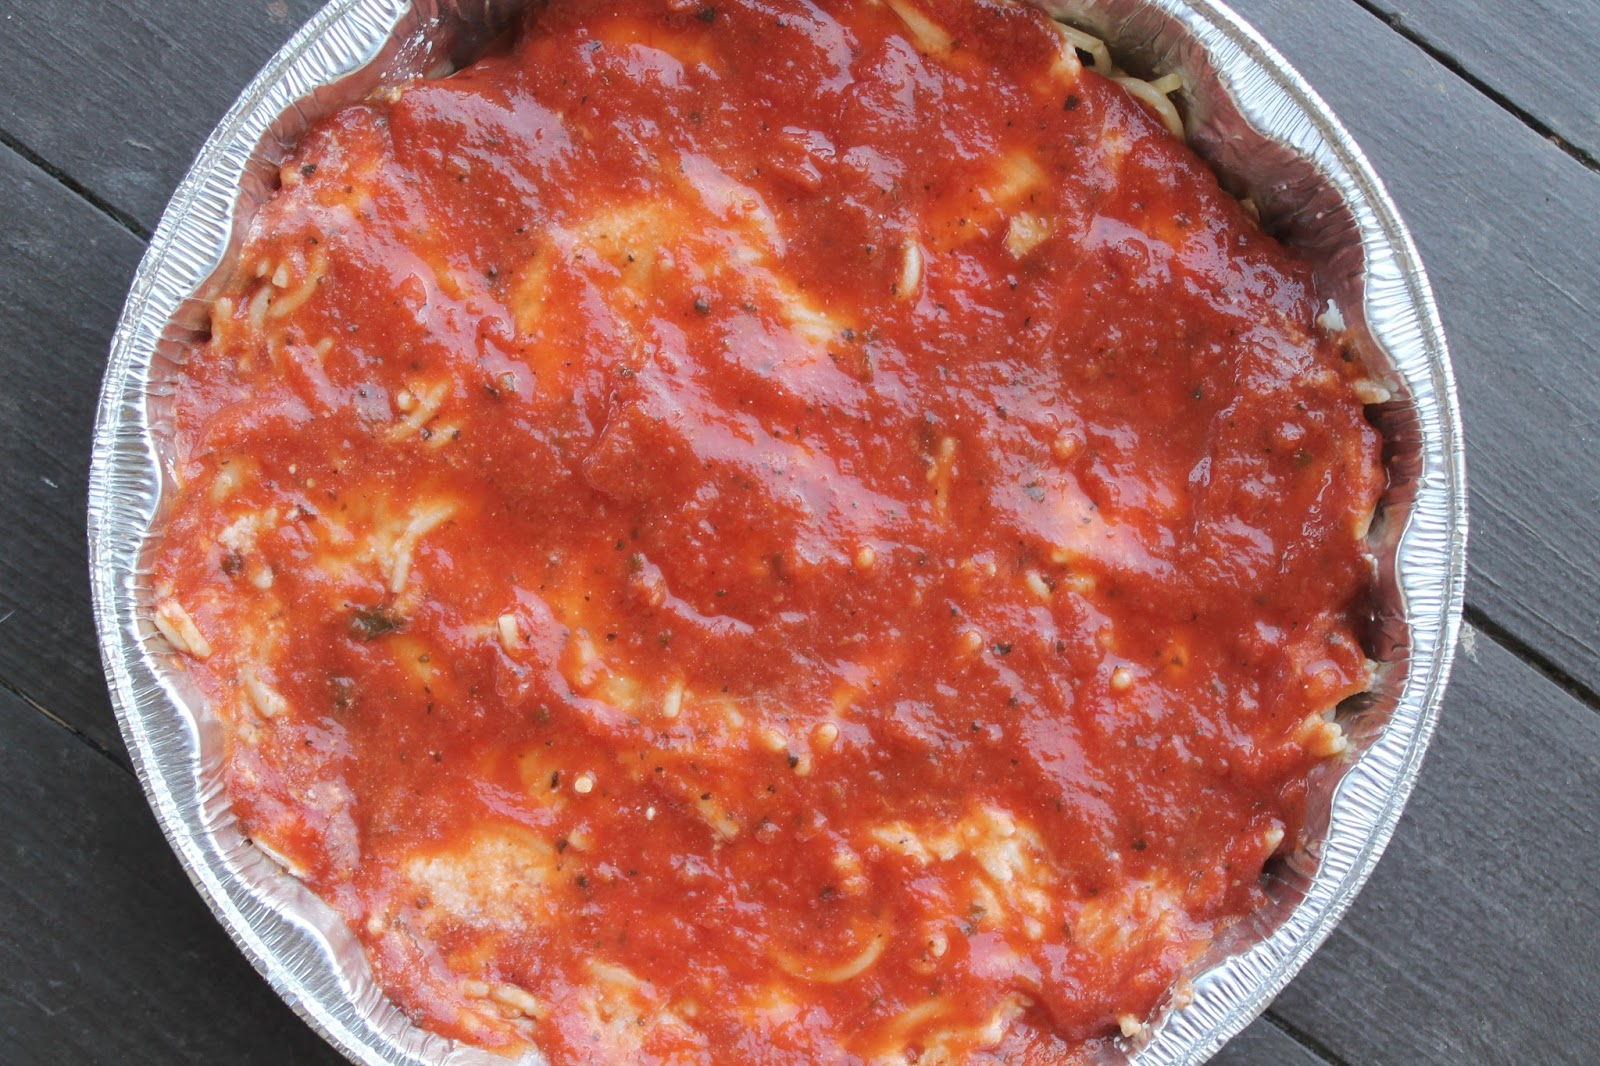 baked spaghetti with sauce in tin